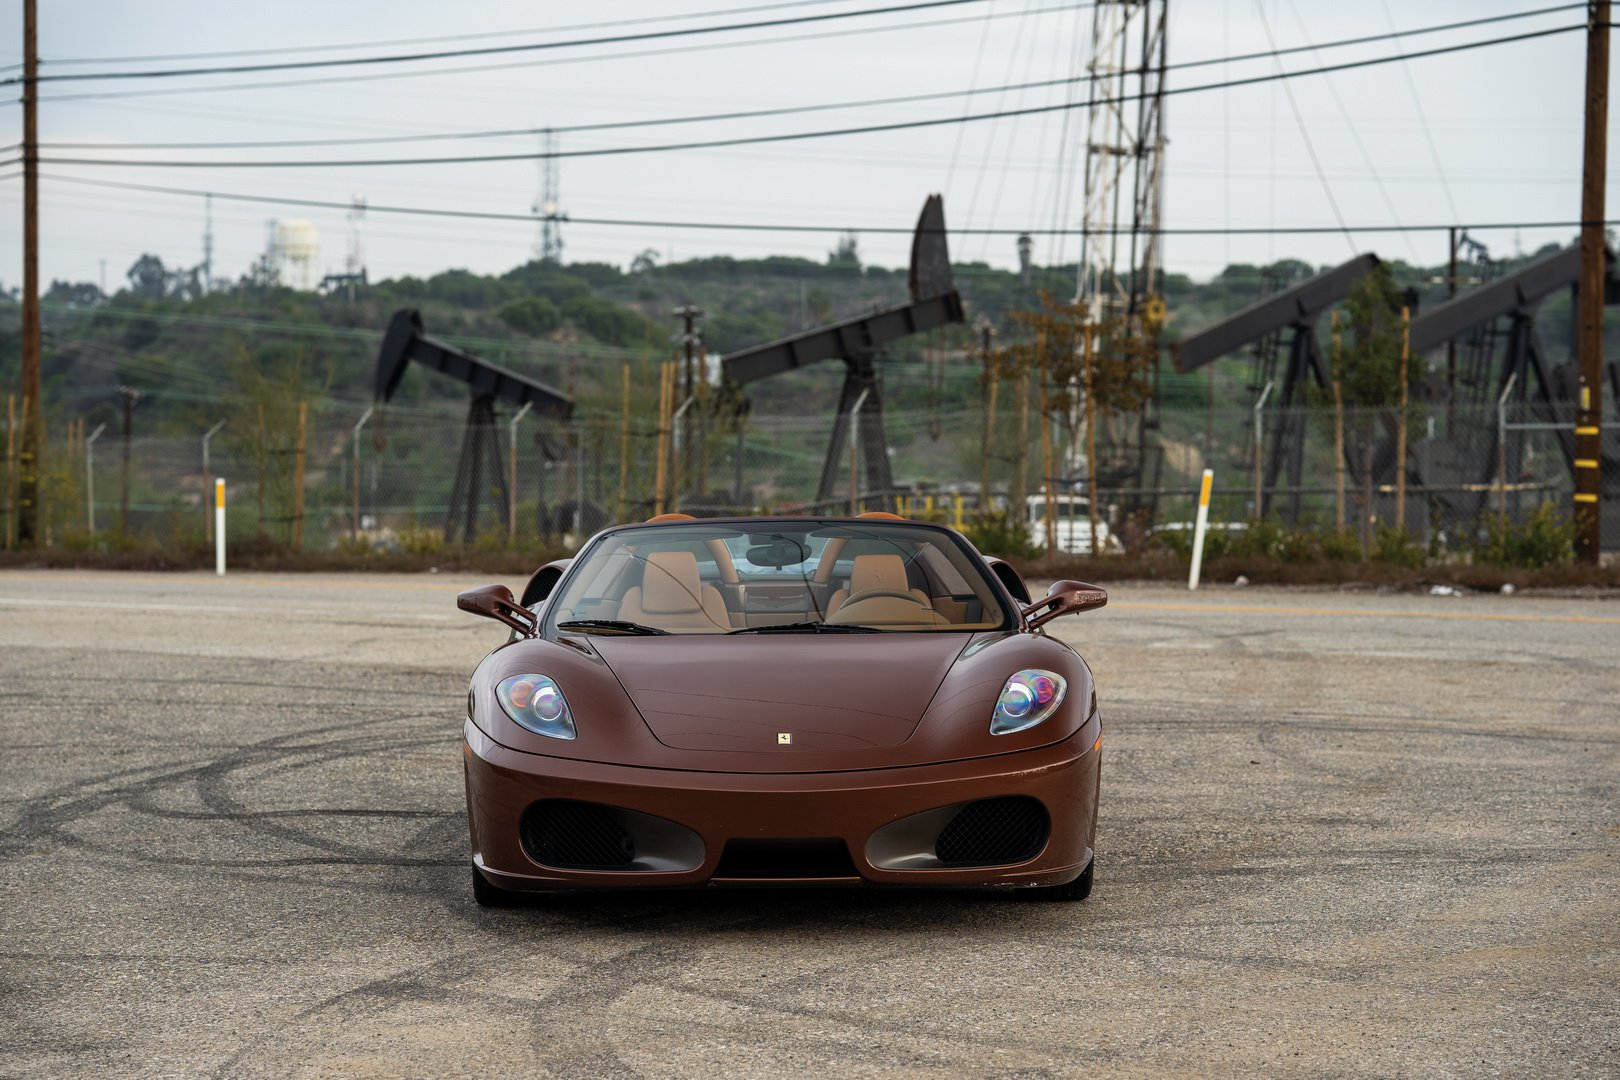 Ferrari F430 Spider in brown Classic Marrone color (4)